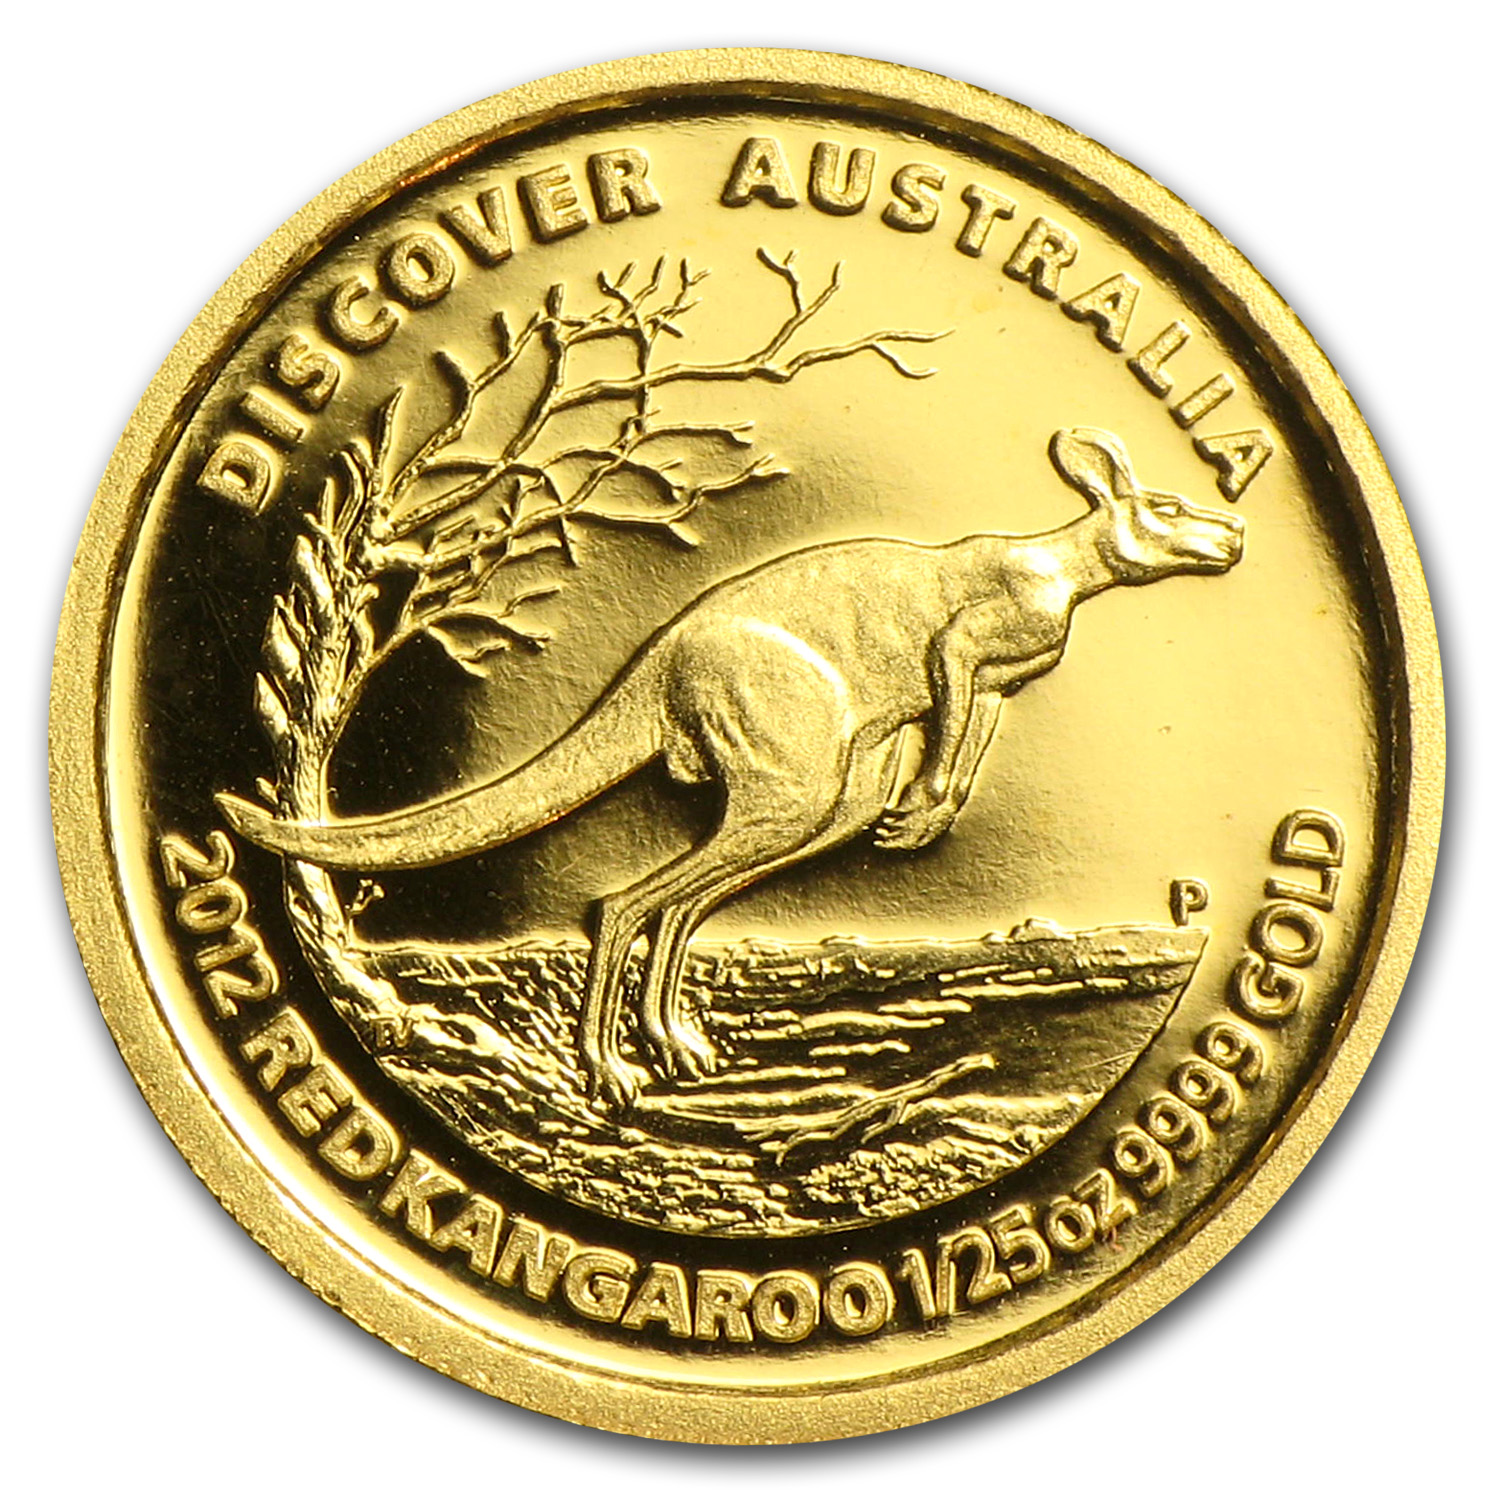 1/25 oz Proof Gold Discover Australia Series (Random Years)